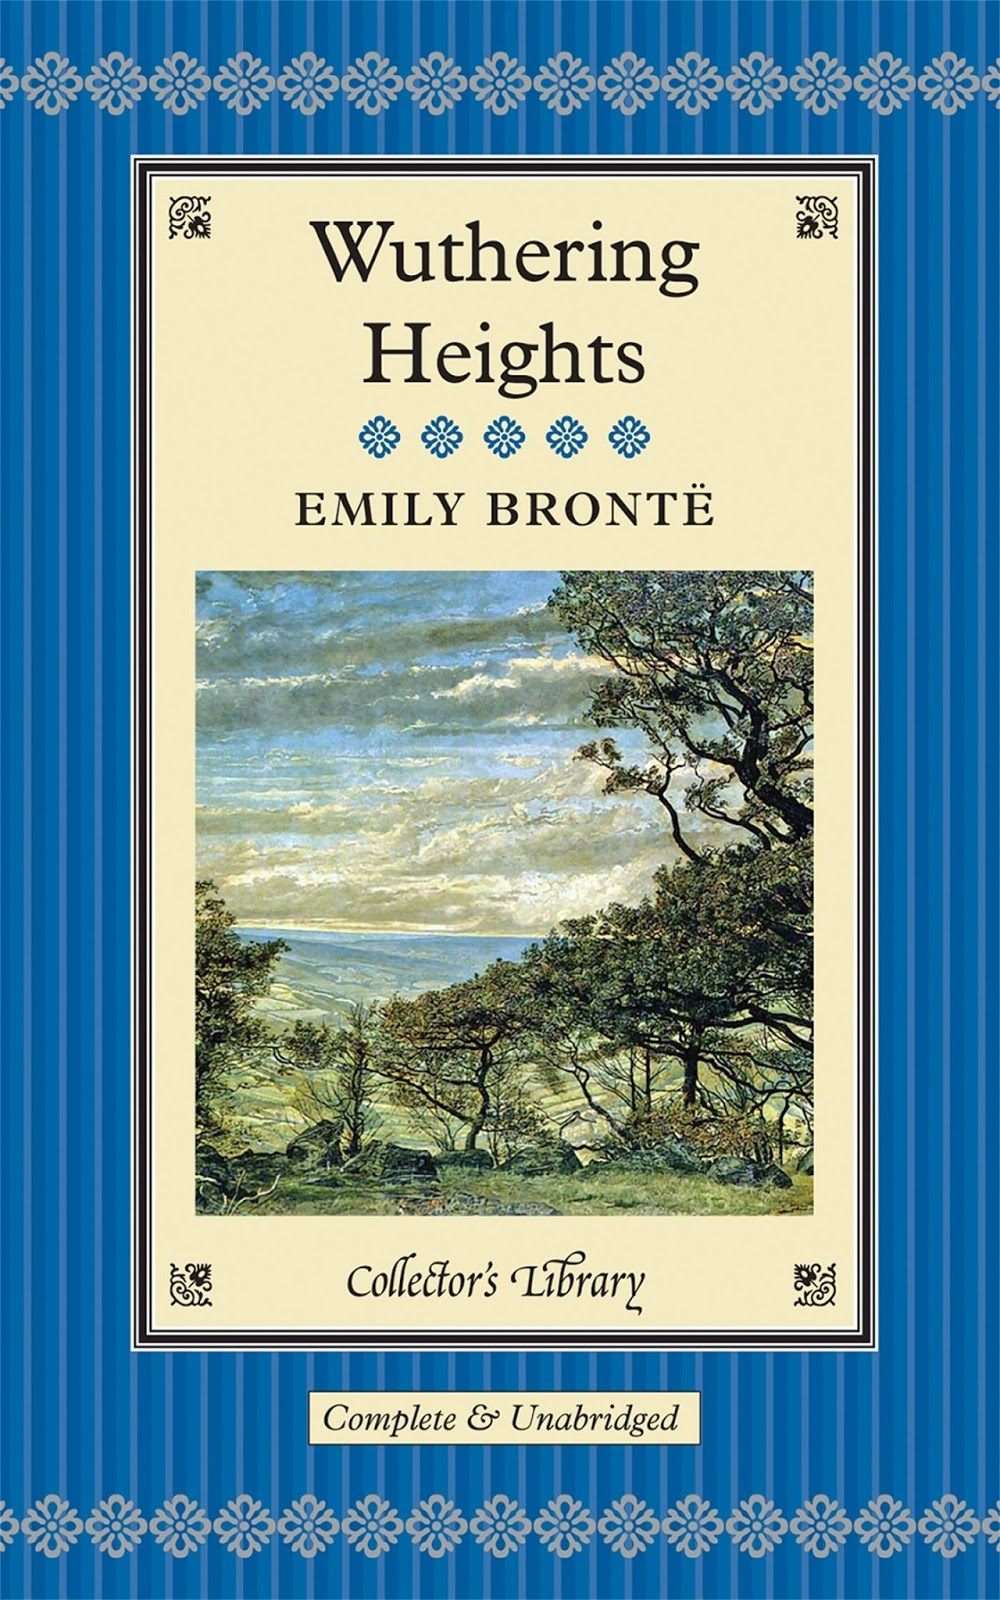 wuthering heights writing style Writing style of emily bronte in wuthering heights, techniques and tone described, wuthering heights is a story written by emily bronte.